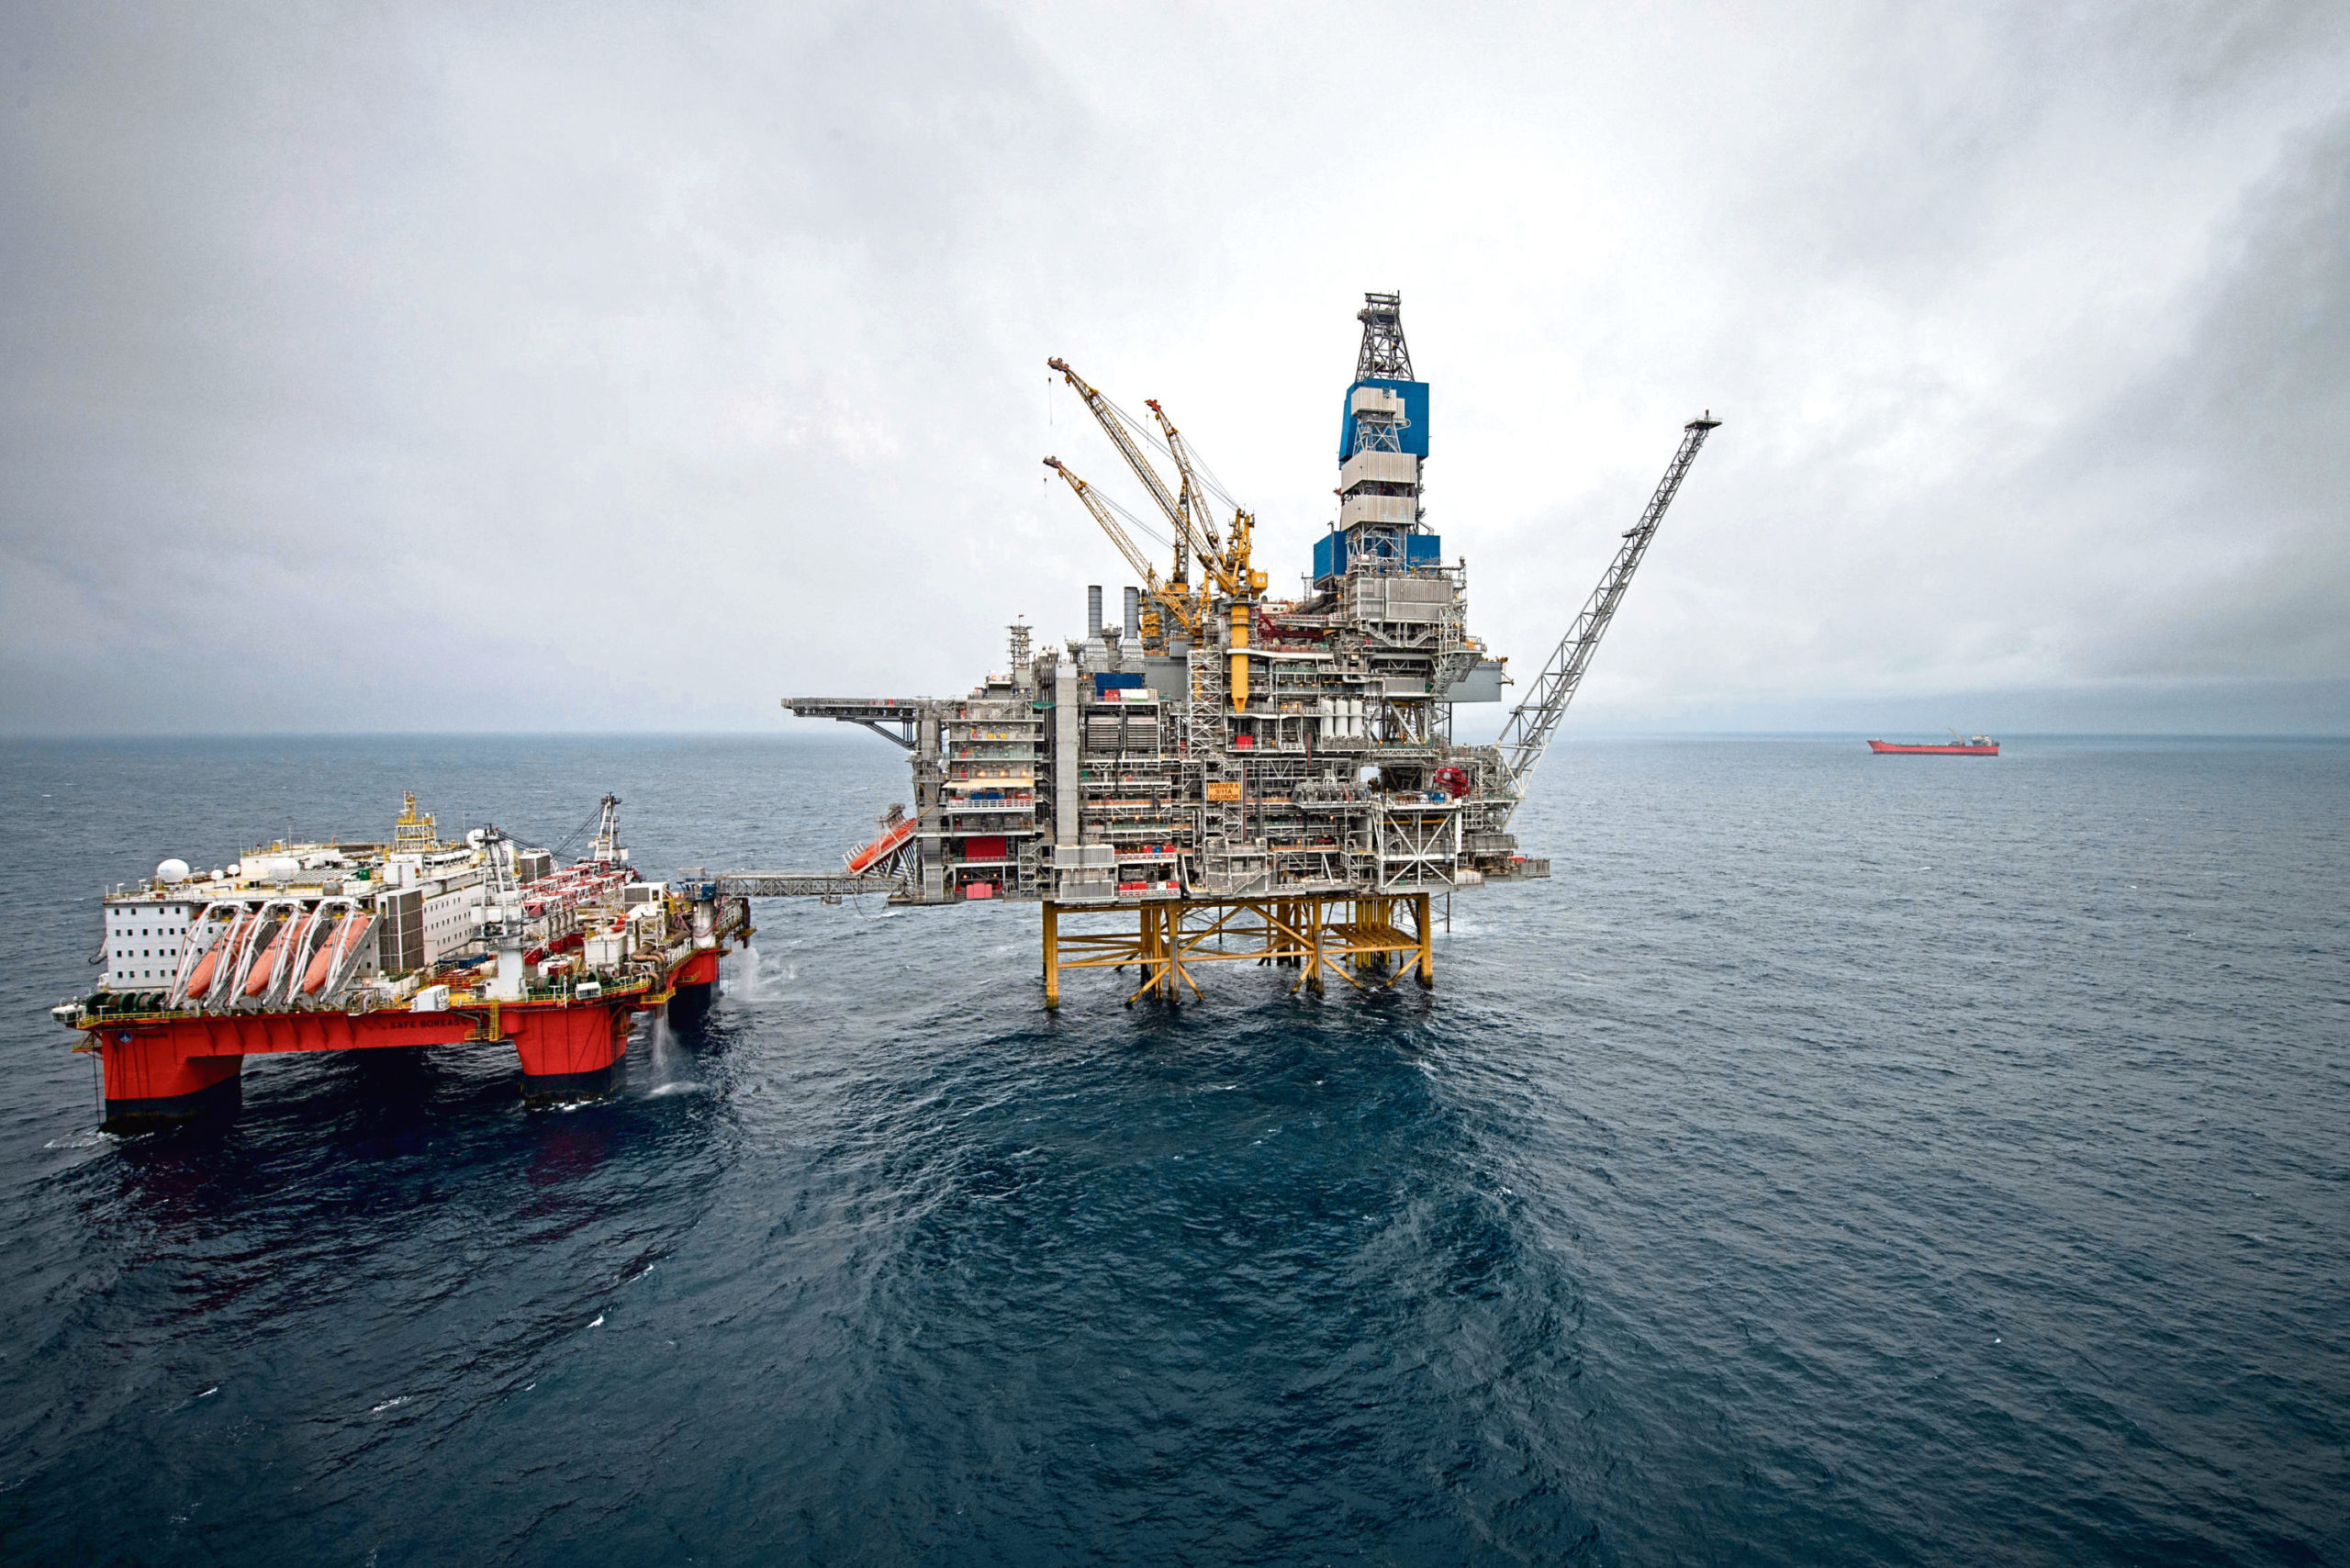 North Sea infrastructure should be used to drive carbon capture, the report states.